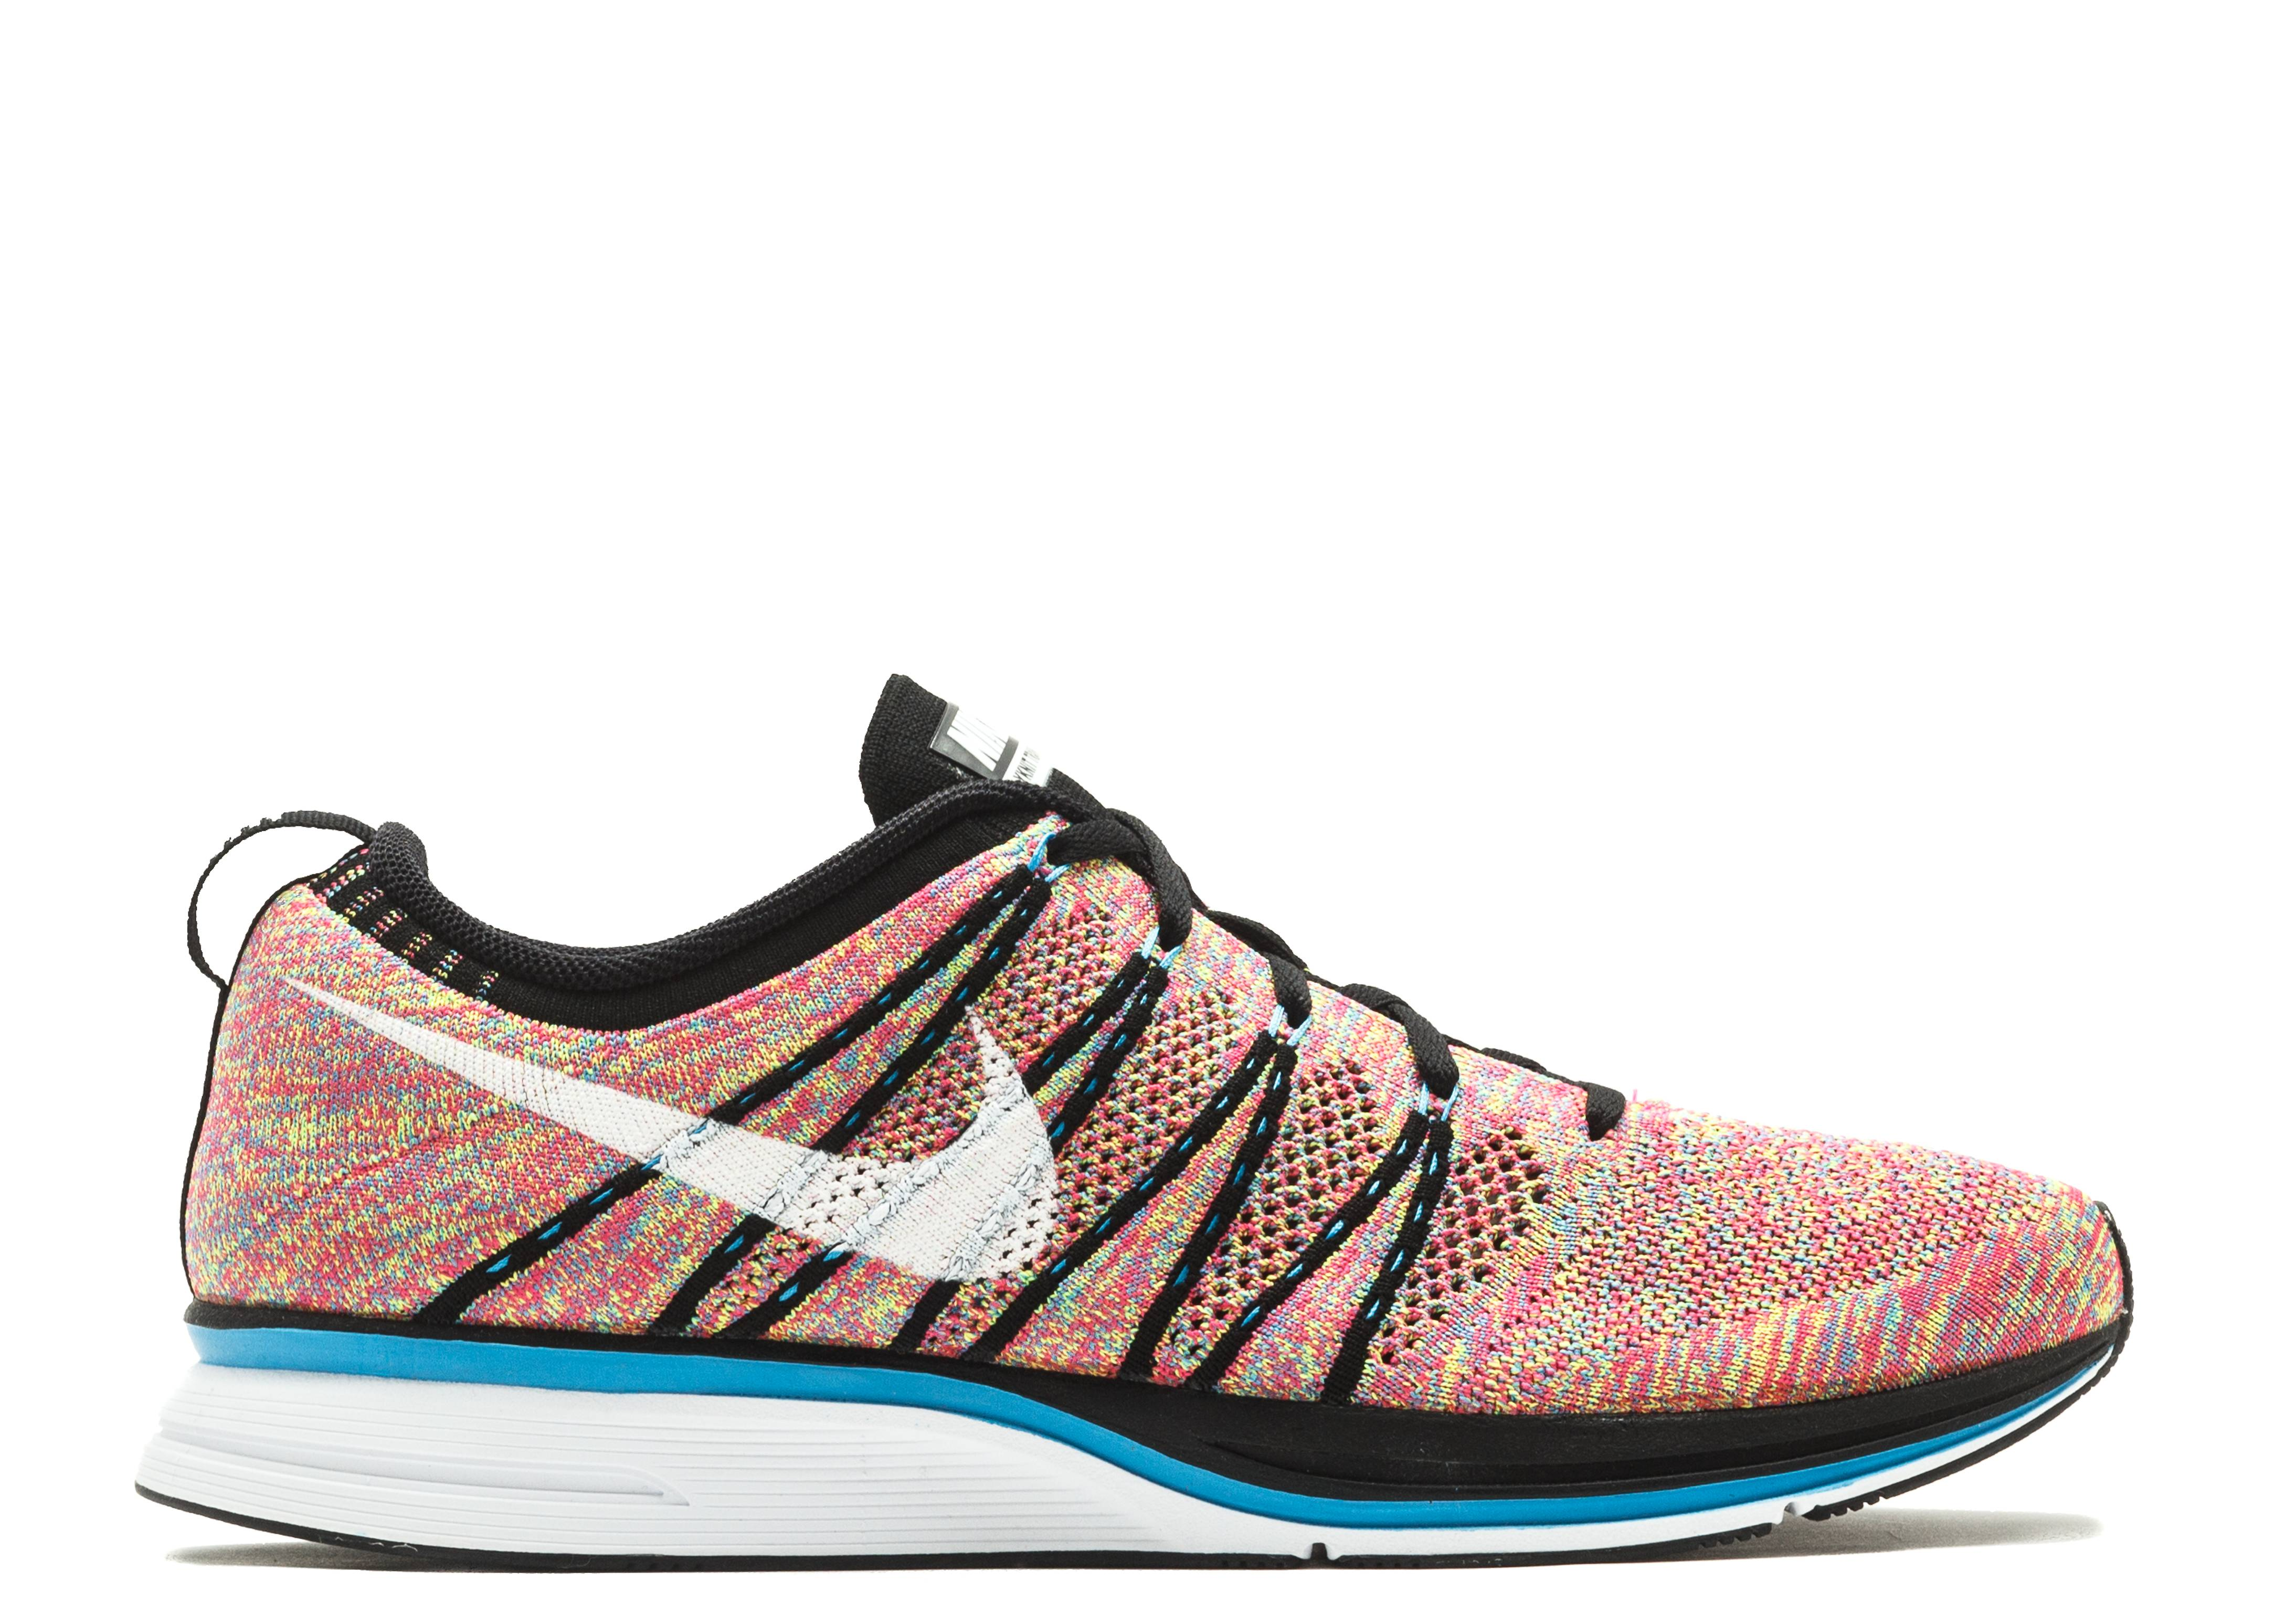 quality products quite nice classic style flyknit trainer+